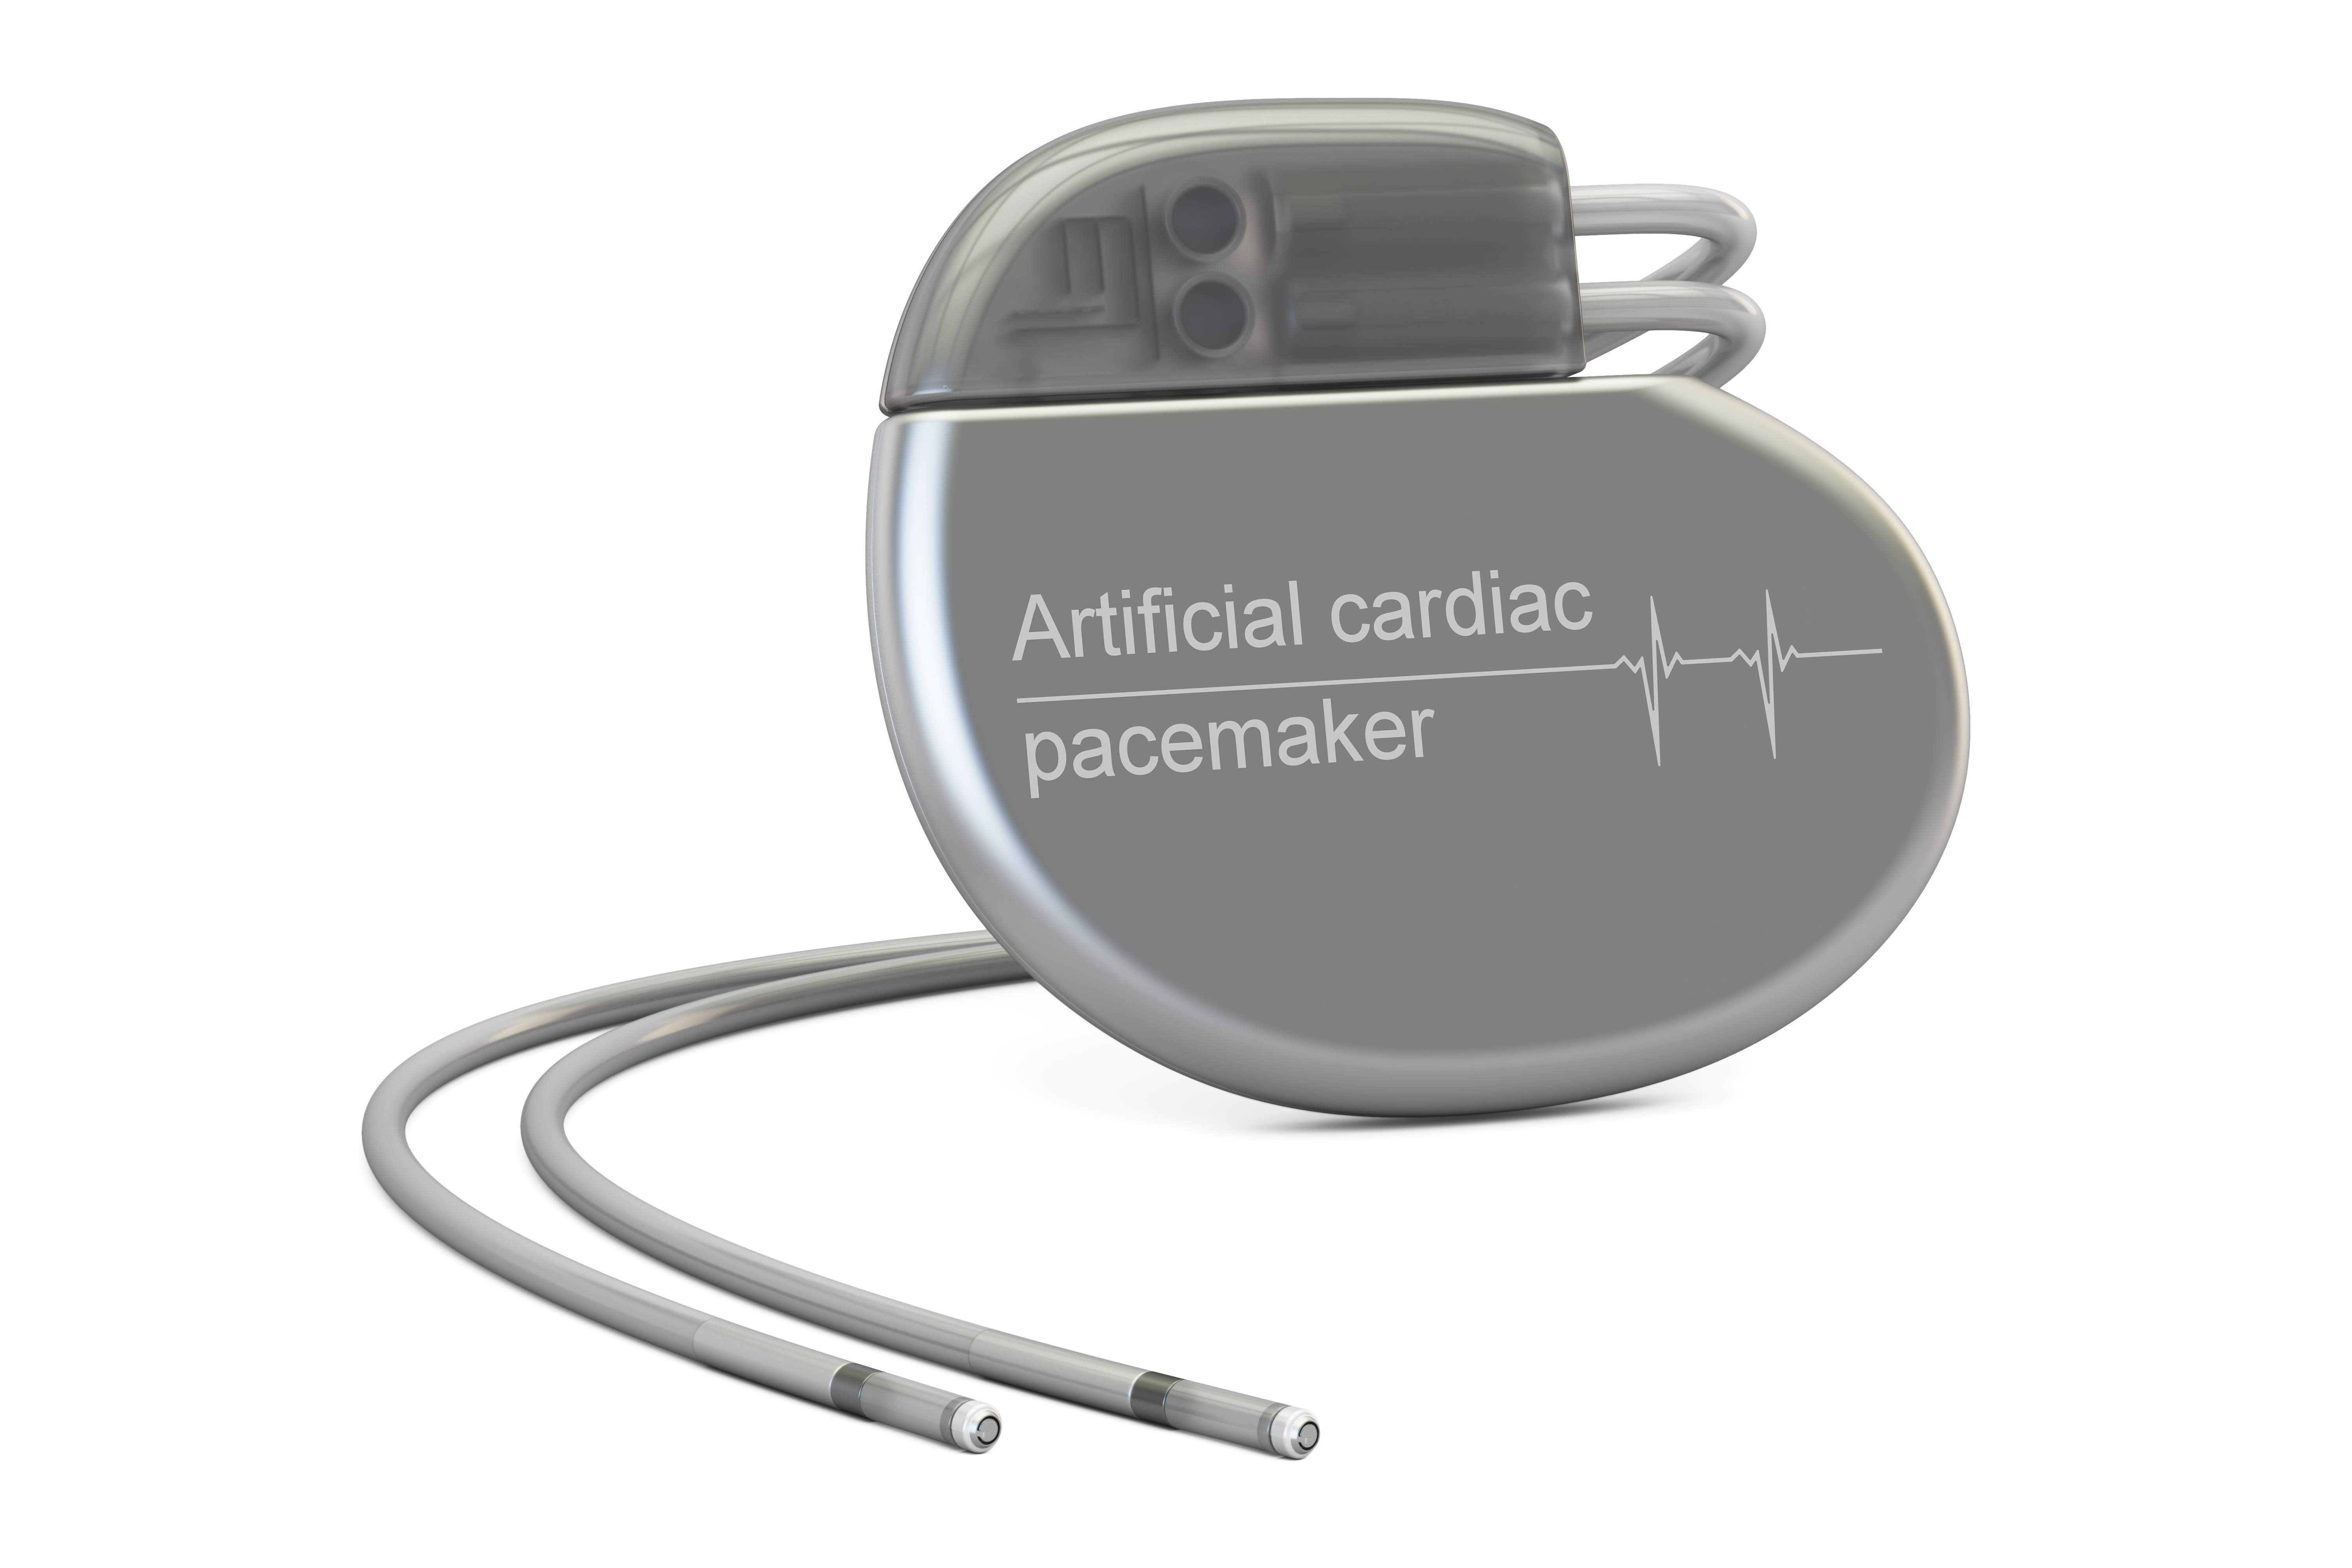 Pacemaker Ecosystem Fails Its Cybersecurity Checkup The First Stop